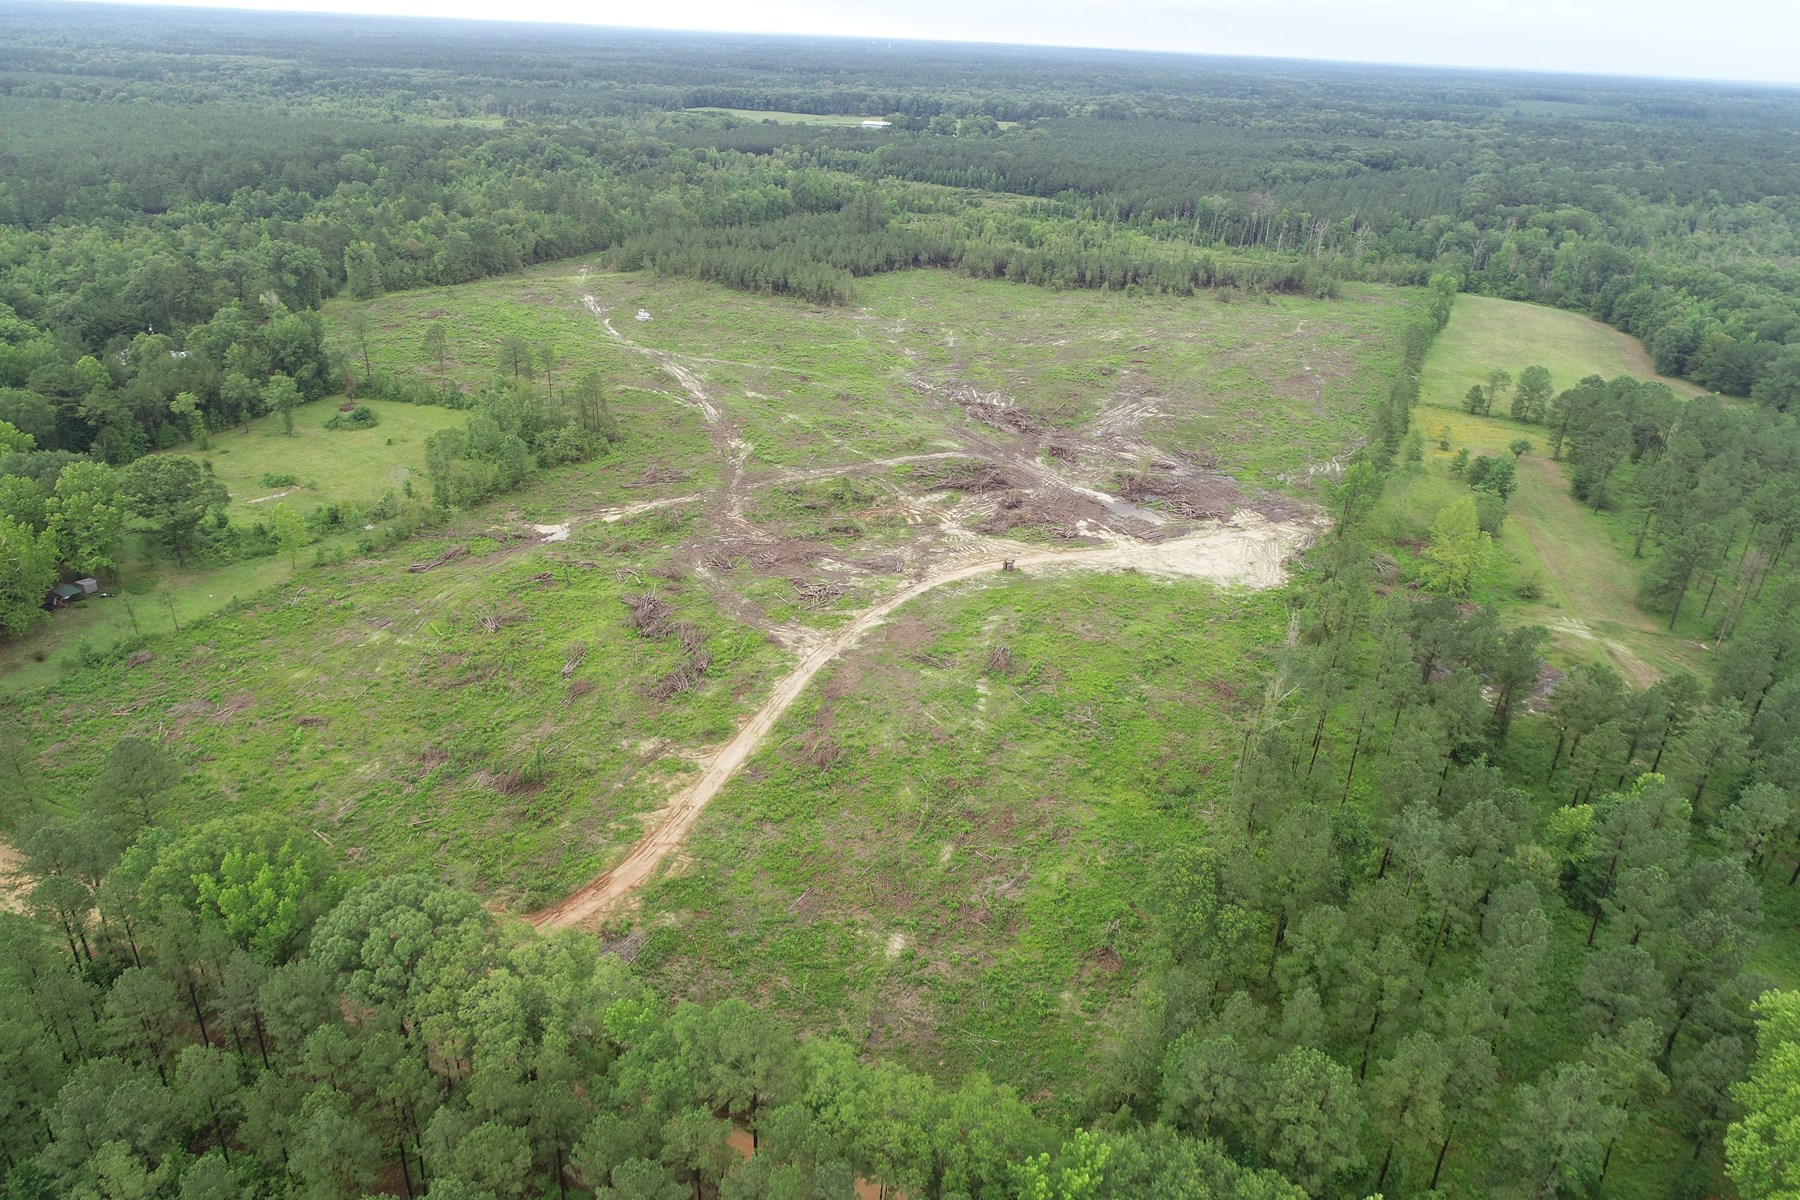 Cleared Timber Land for Sale near Junction City, Arkansas